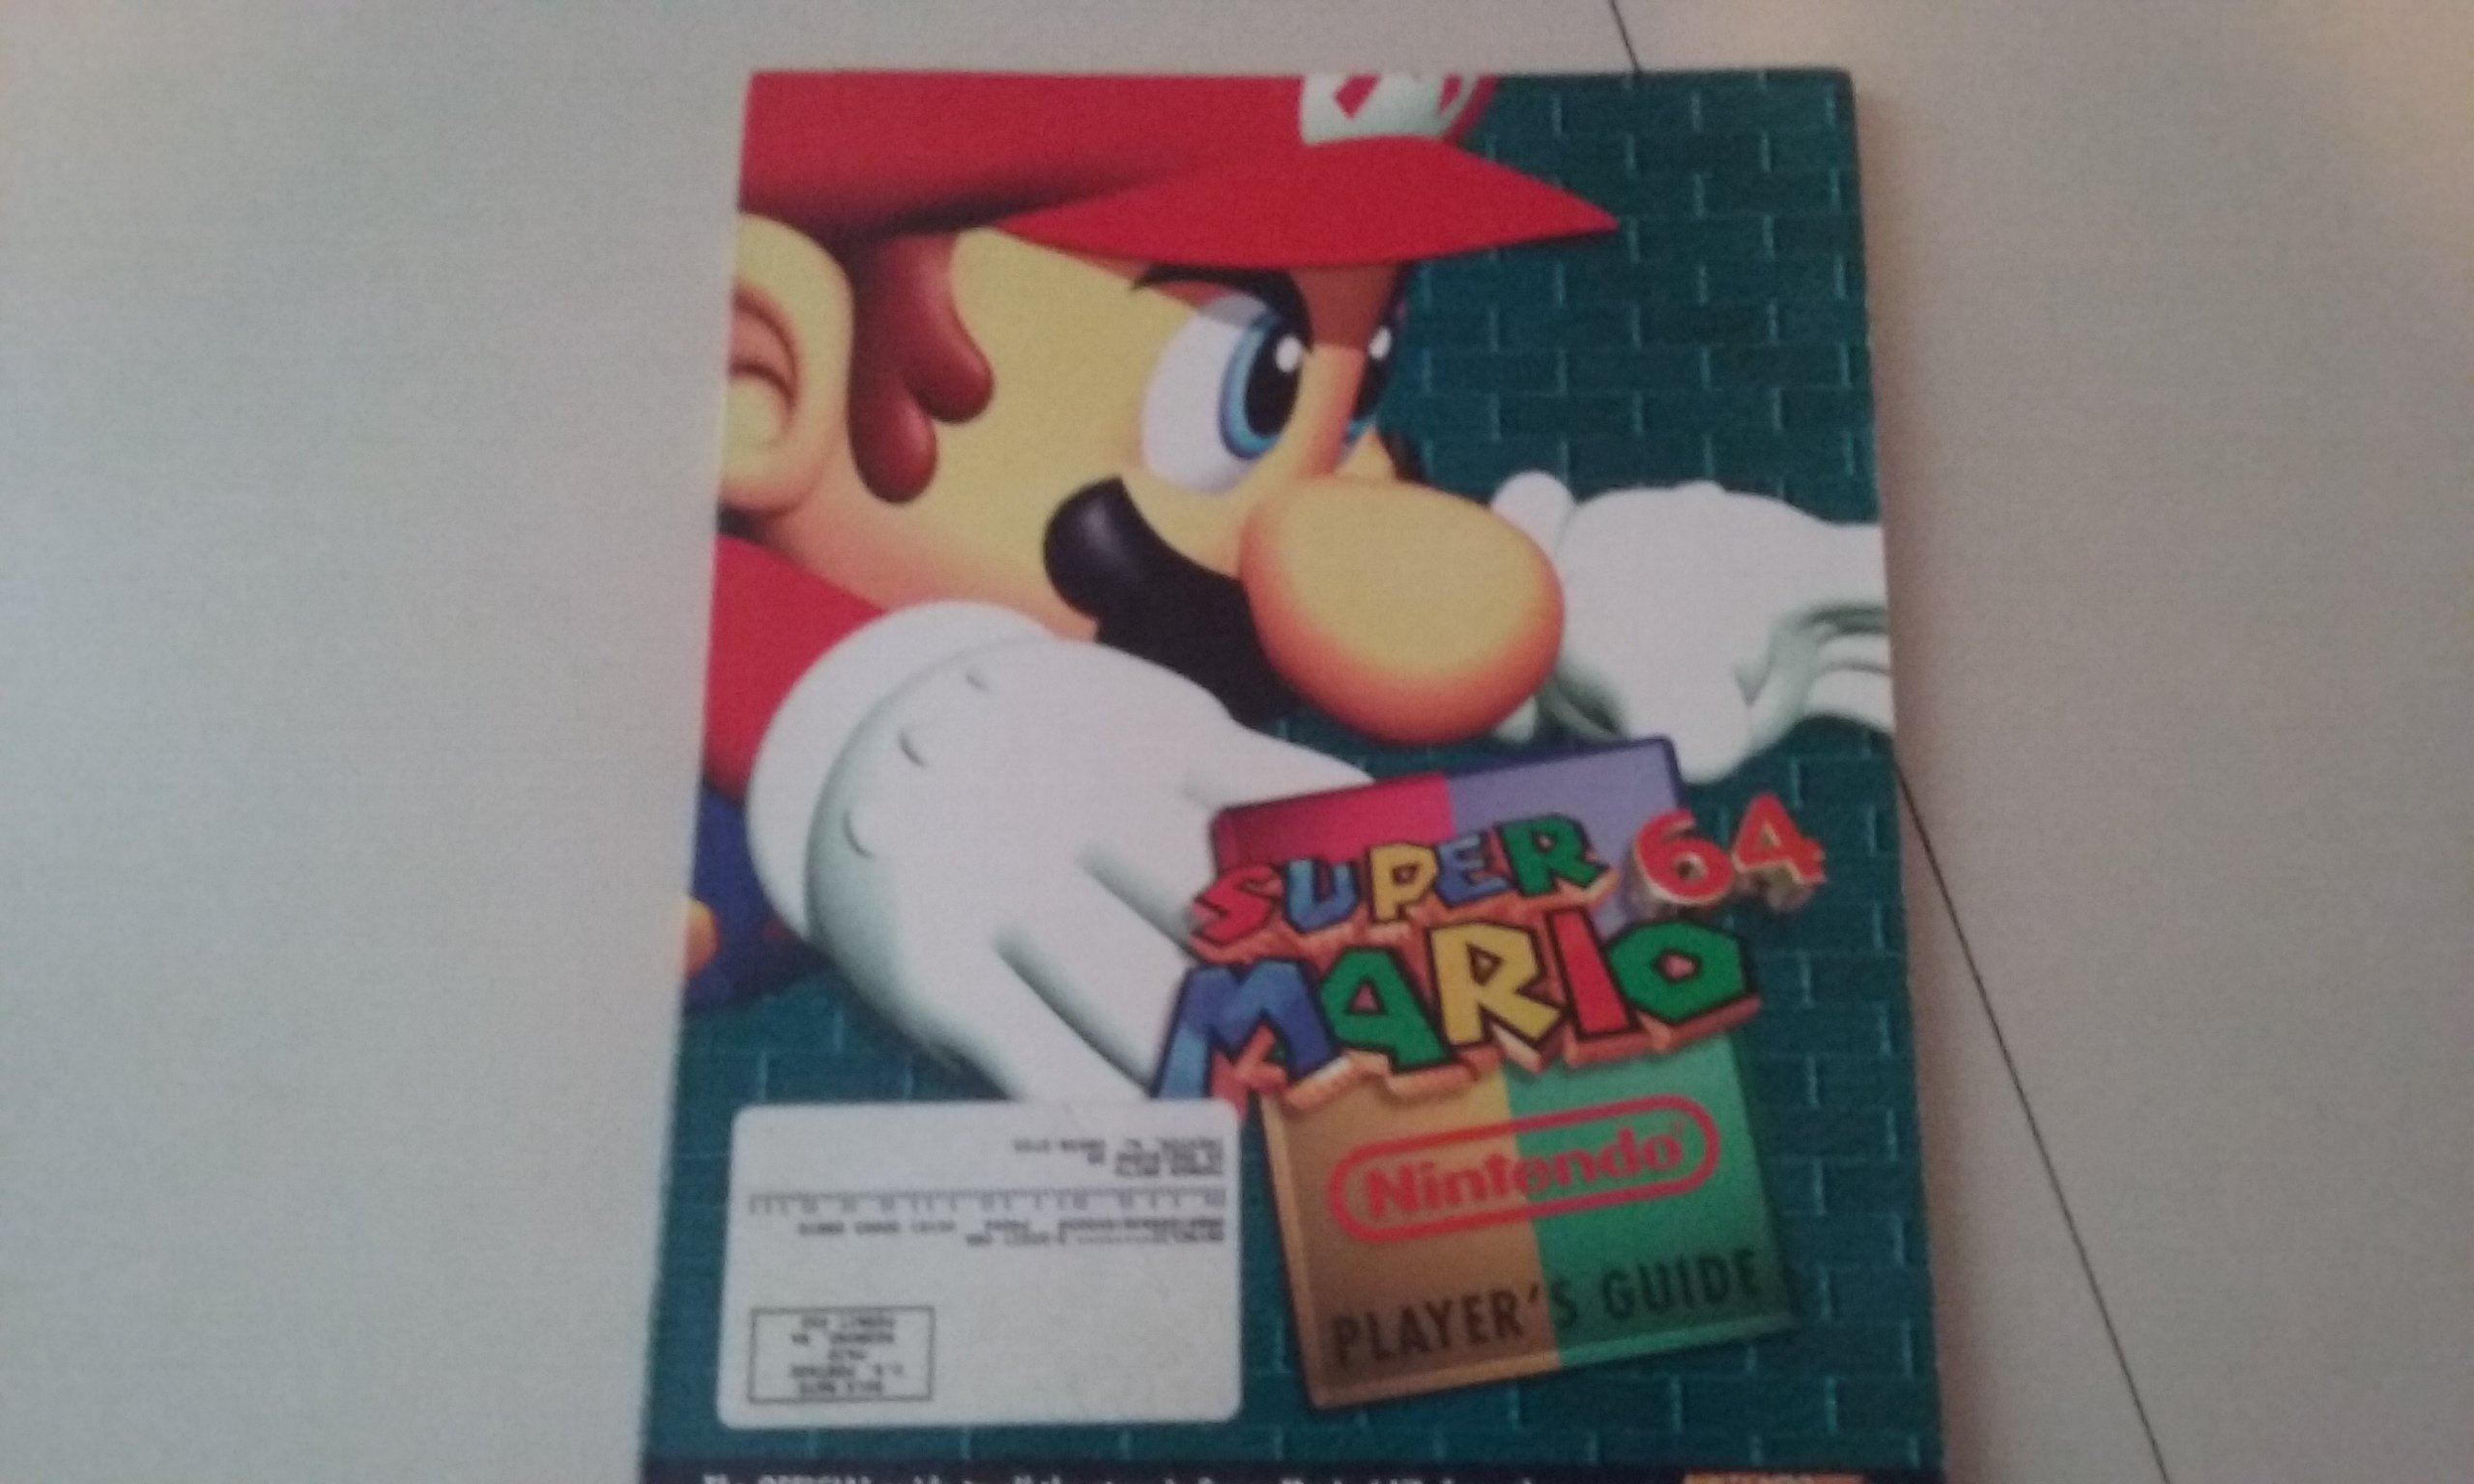 Super Mario 64 Player's Guide: Gail Tilden: 0045496691110